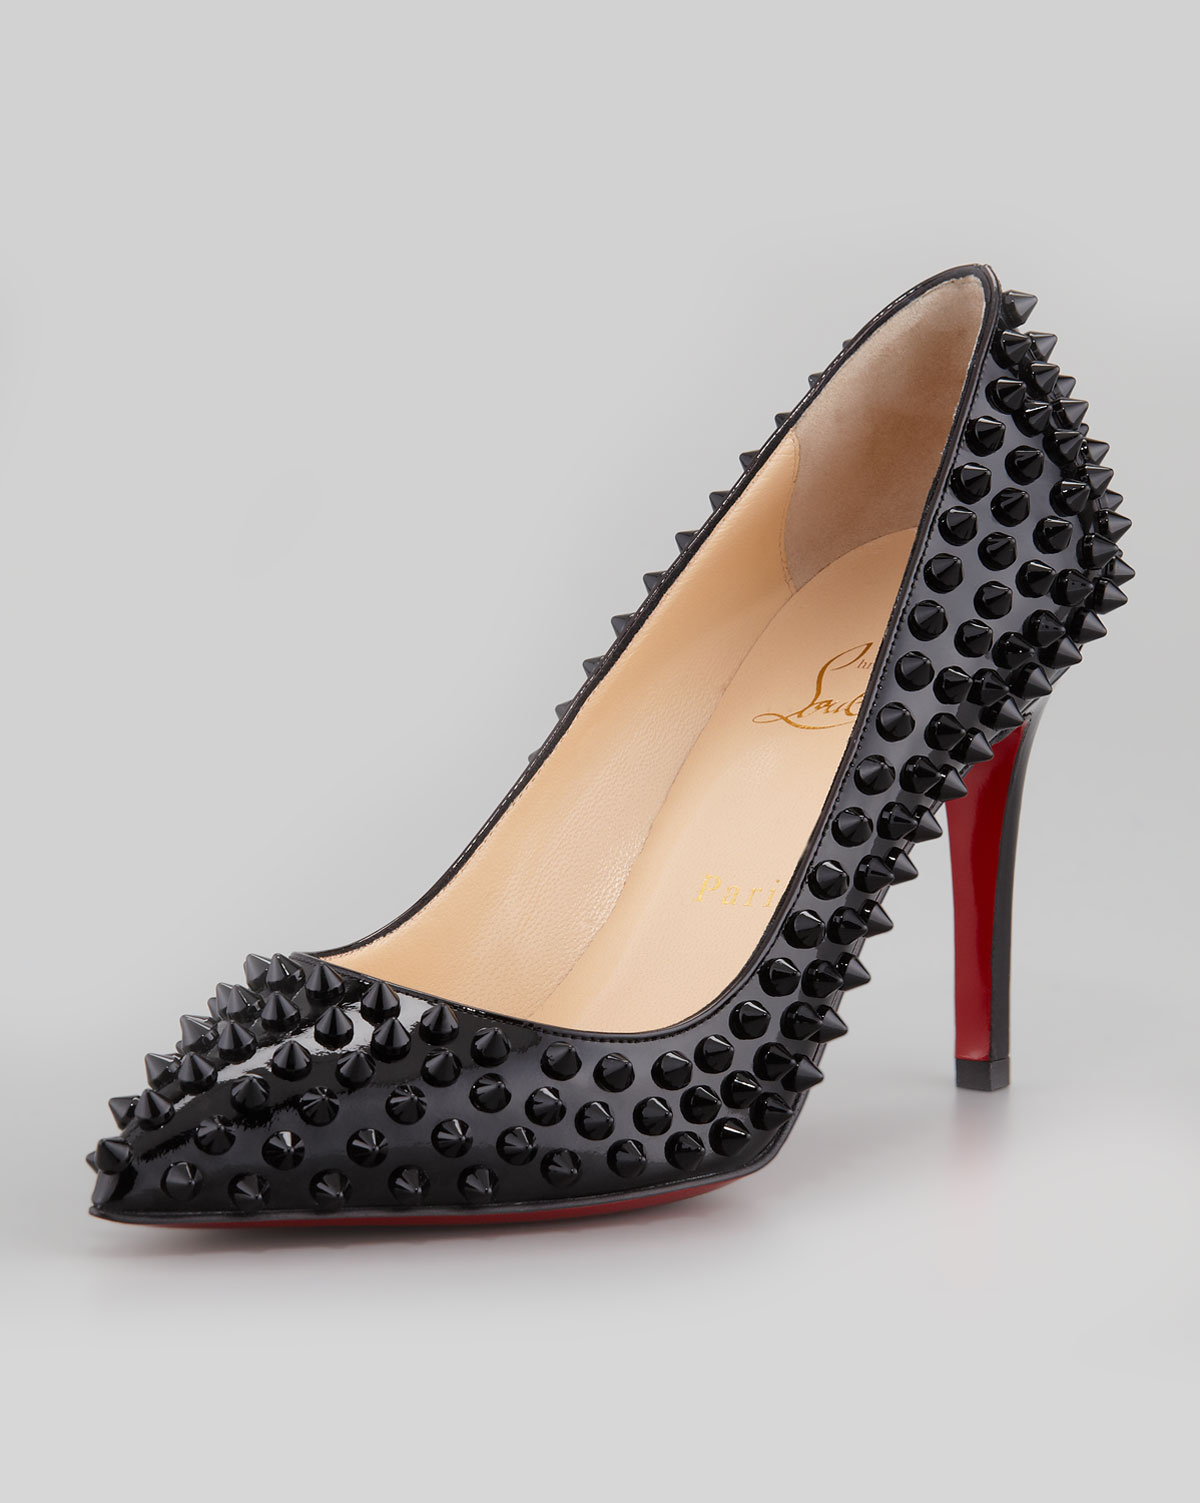 Lyst Christian Louboutin Studded Patent Leather Pumps In